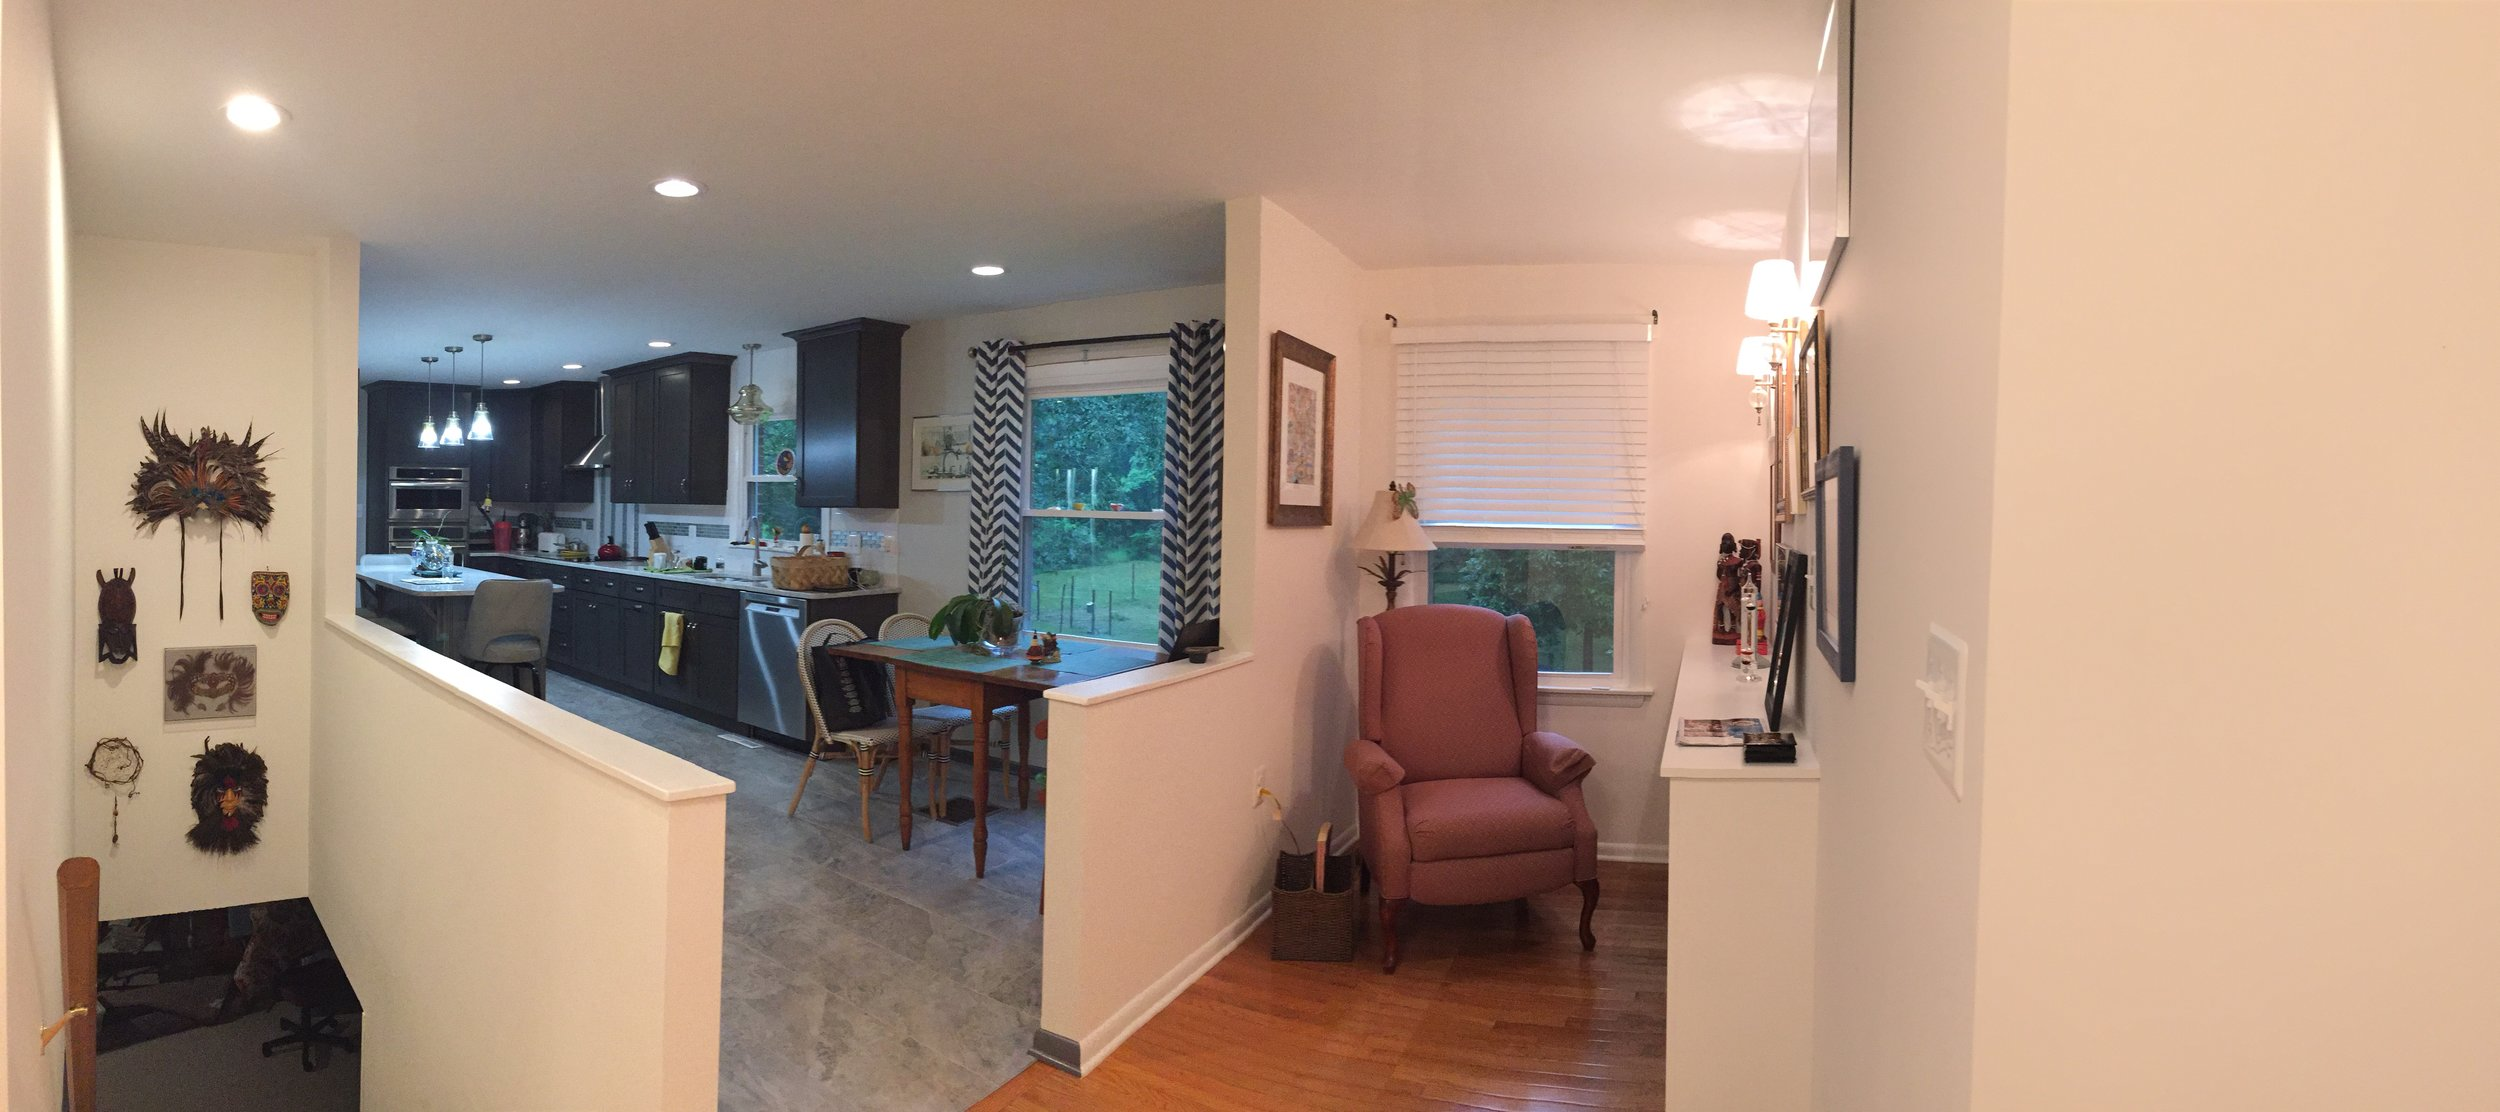 After, the former Living Room window is now part of a great little reading nook. Walls have been removed at the basement staircase and between the former Living Room and the Kitchen. This is the view as one enters from the Foyer.